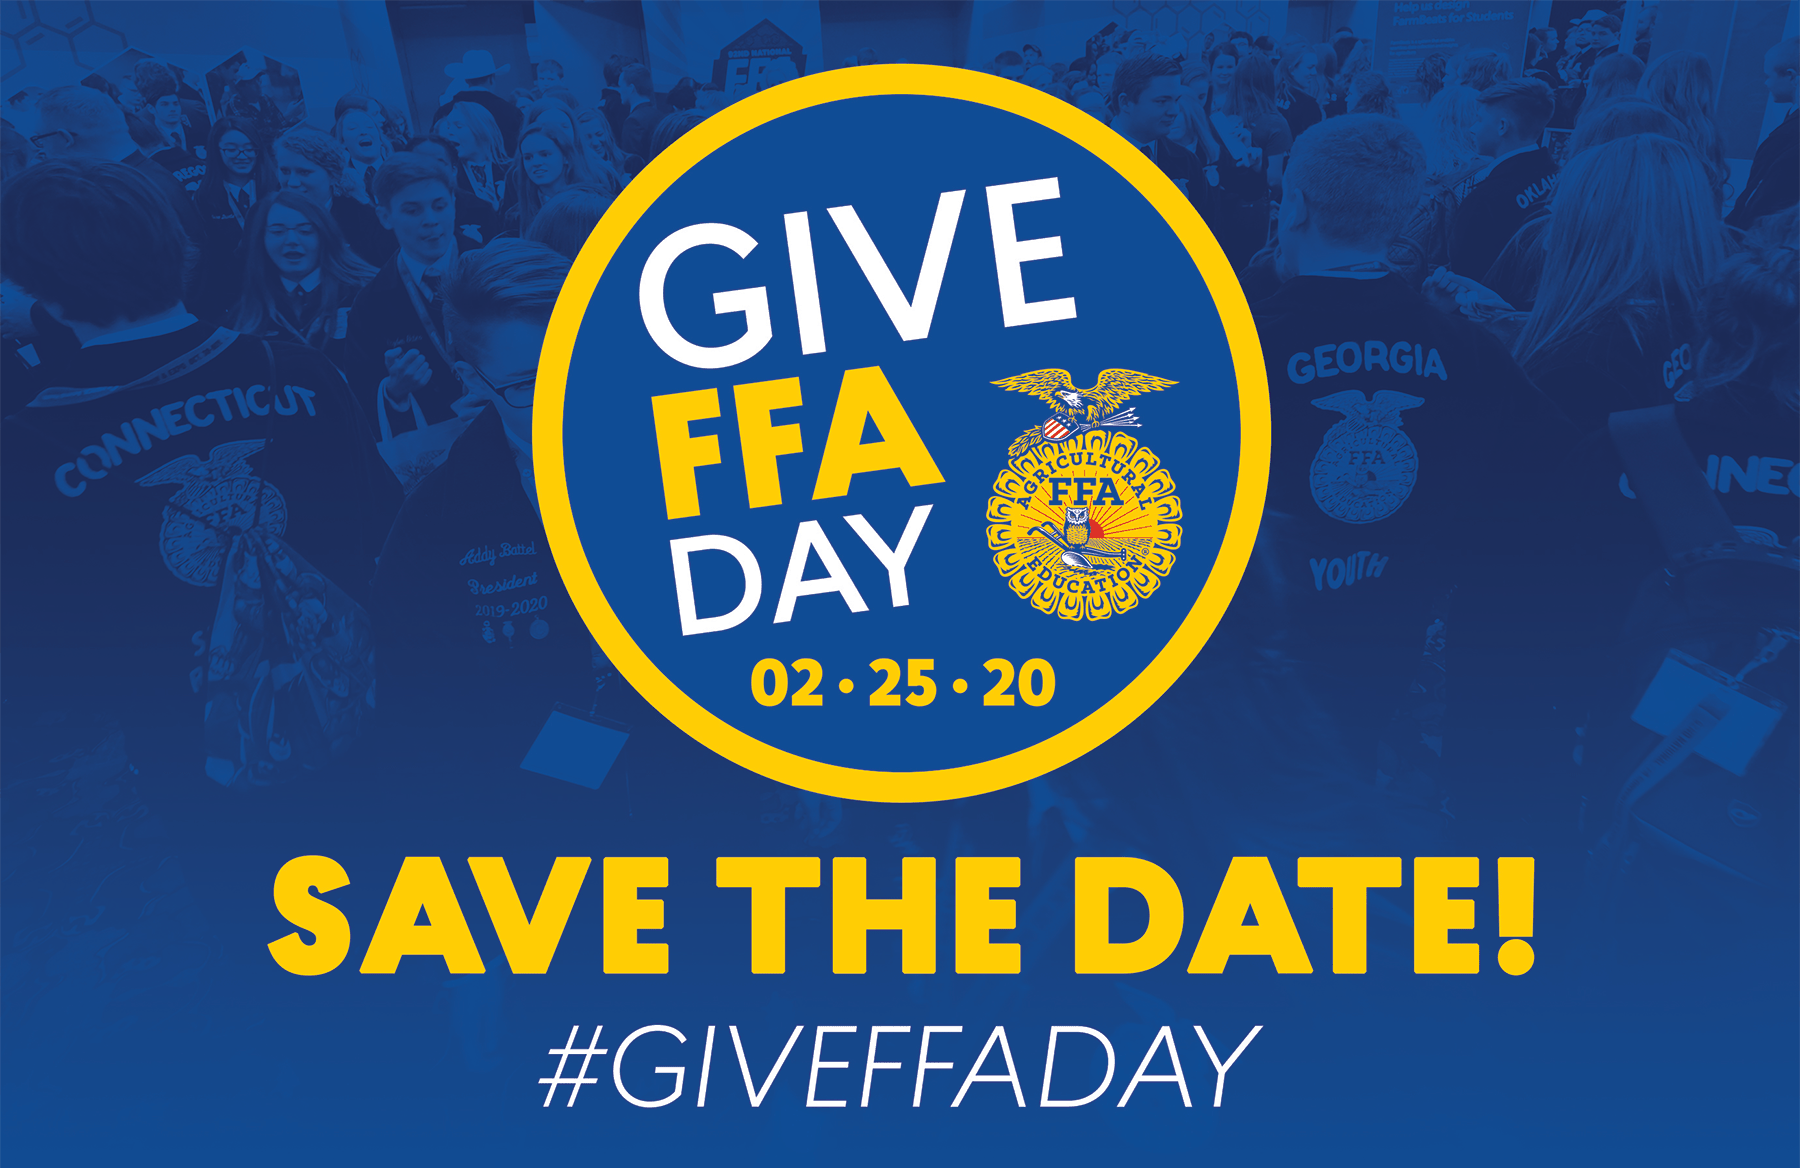 Save the Date! Give FFA Day is Feb. 25, 2020